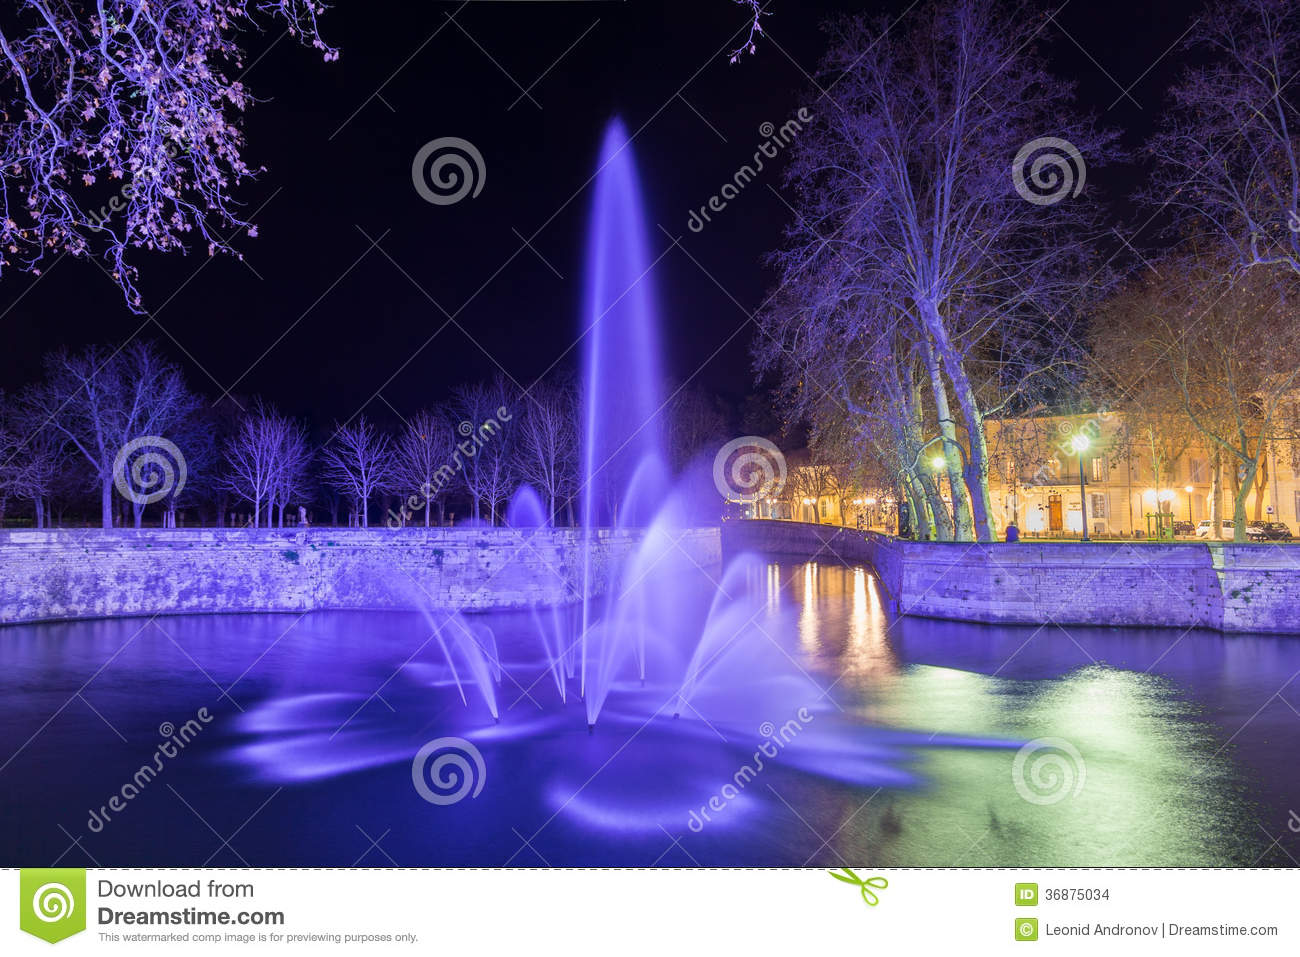 jardins de la fontaine in nimes at night france stock photo image 36875034. Black Bedroom Furniture Sets. Home Design Ideas